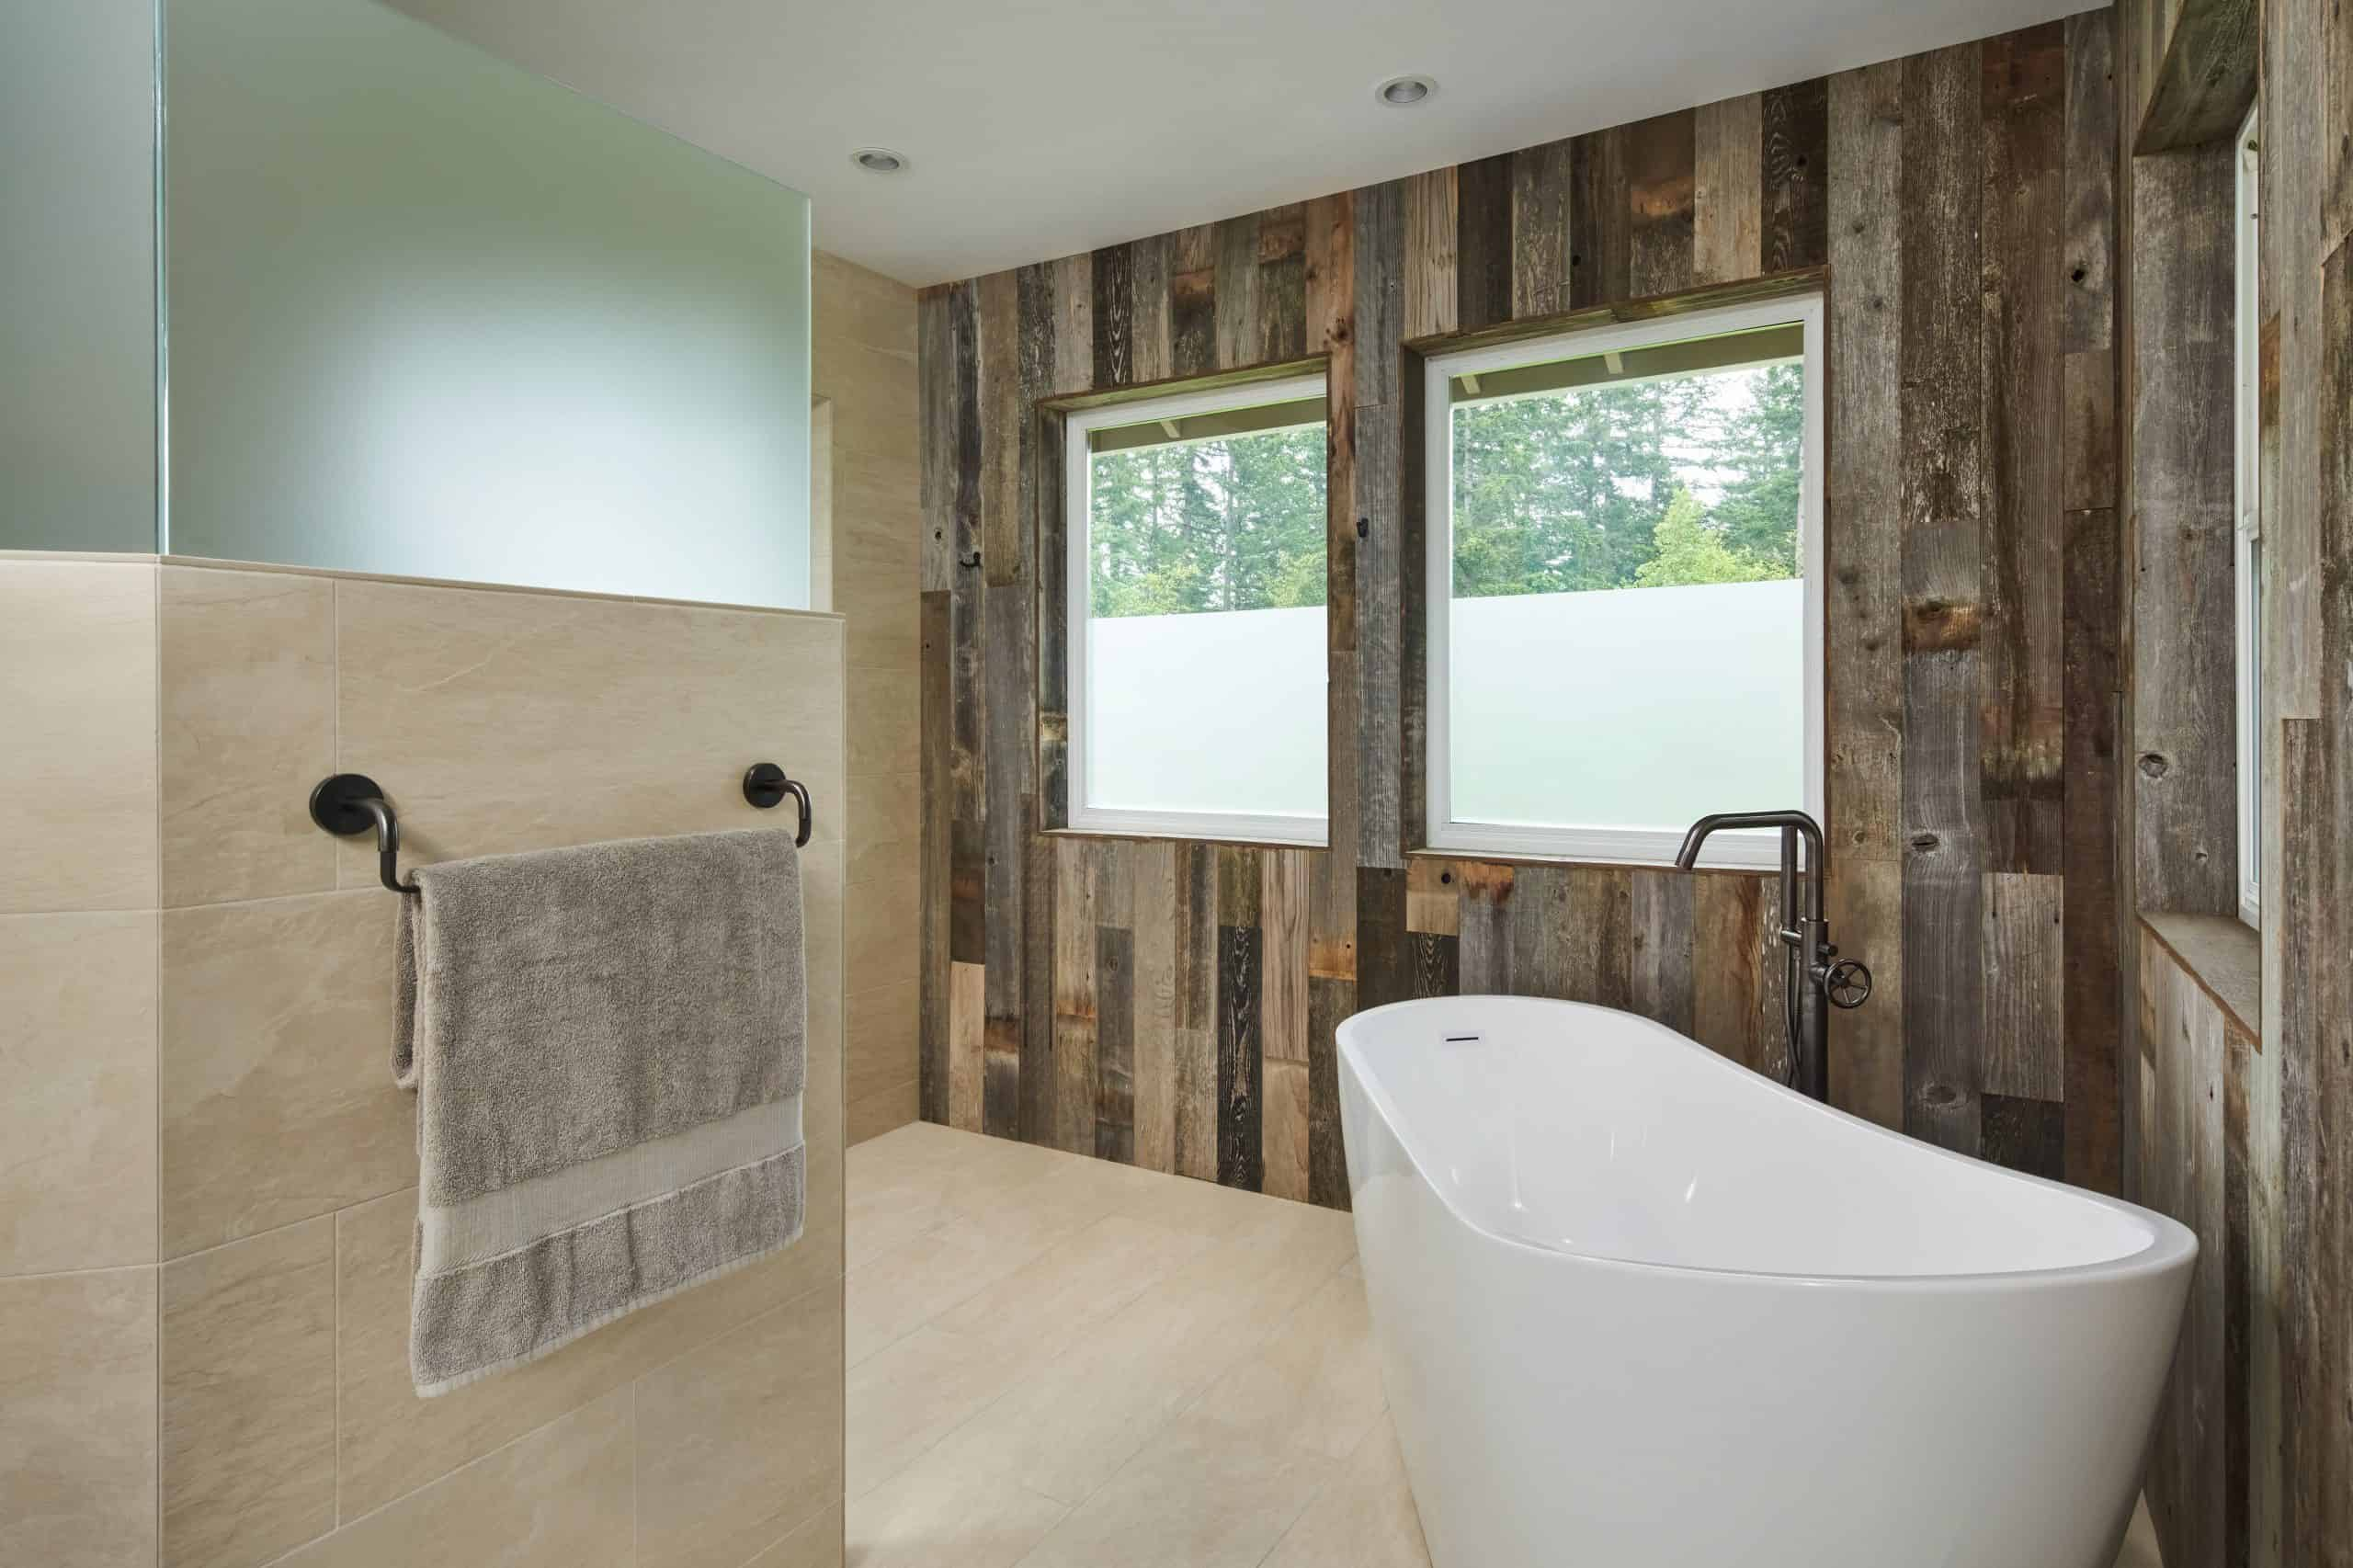 Bathroom remodel includes biophilic design with wood wall cladding